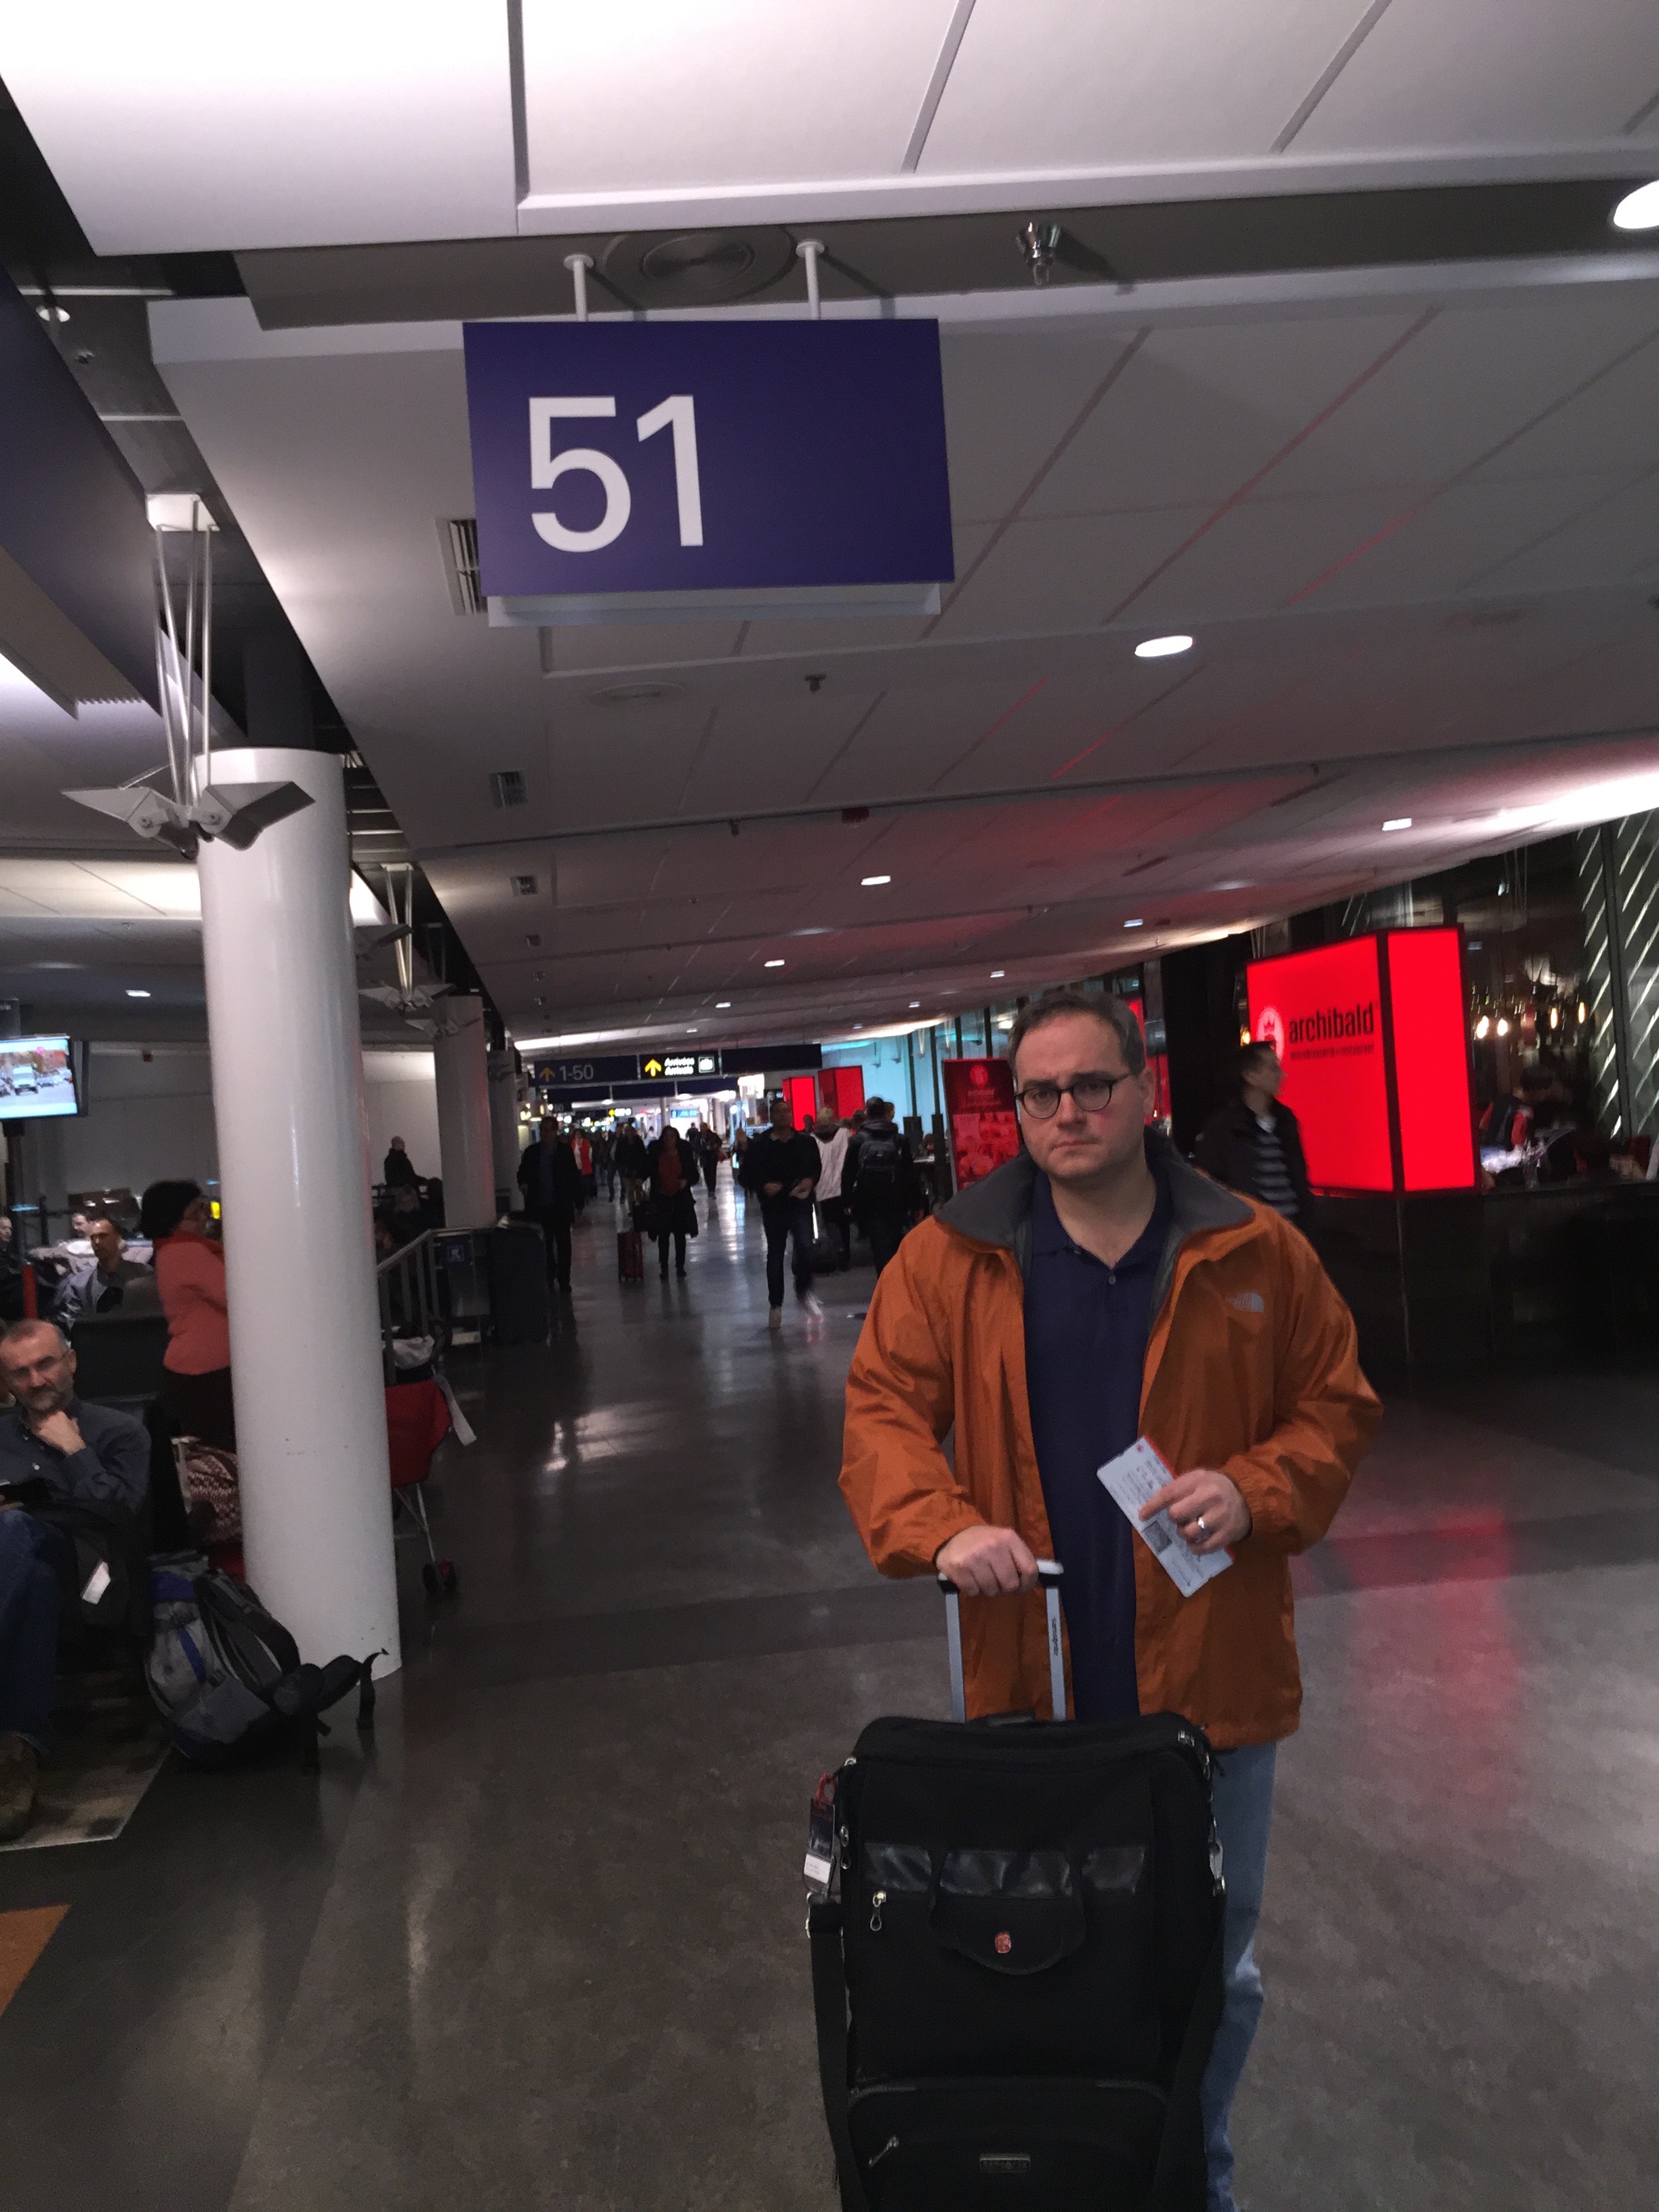 Ezra_at_airport_on_route_to_France.JPG